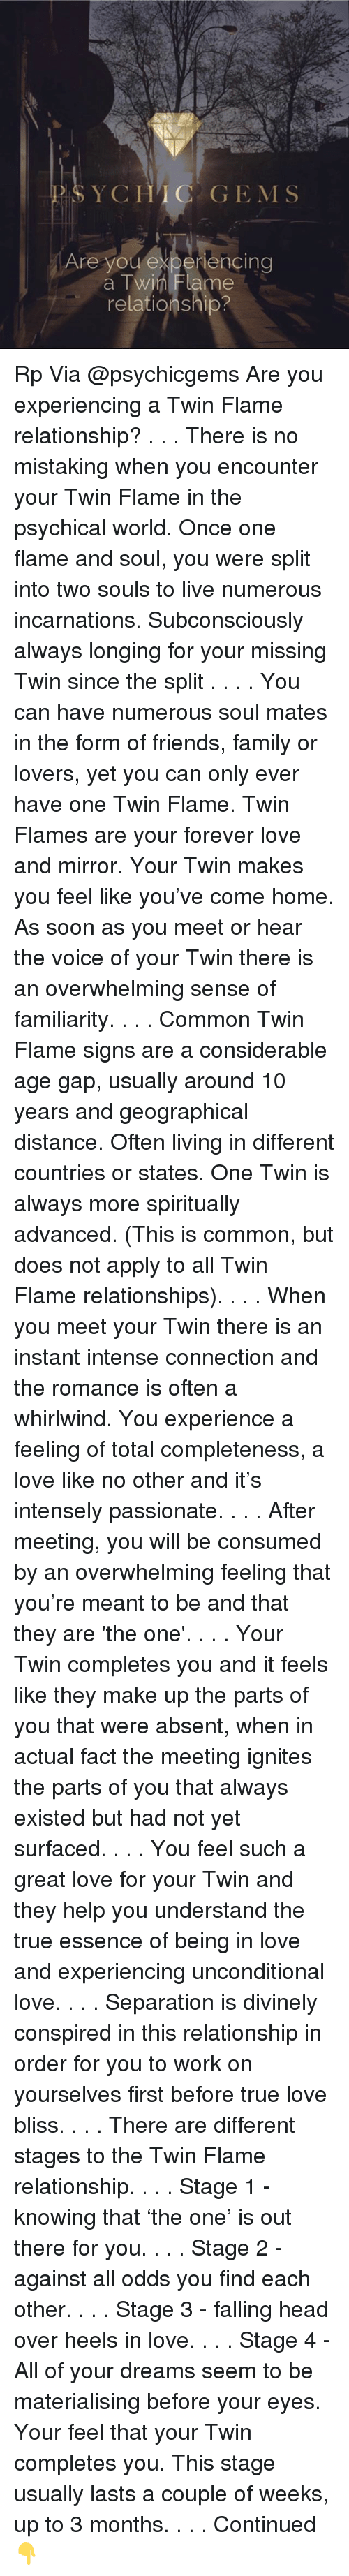 🅱️ 25+ Best Memes About Twin Flames | Twin Flames Memes